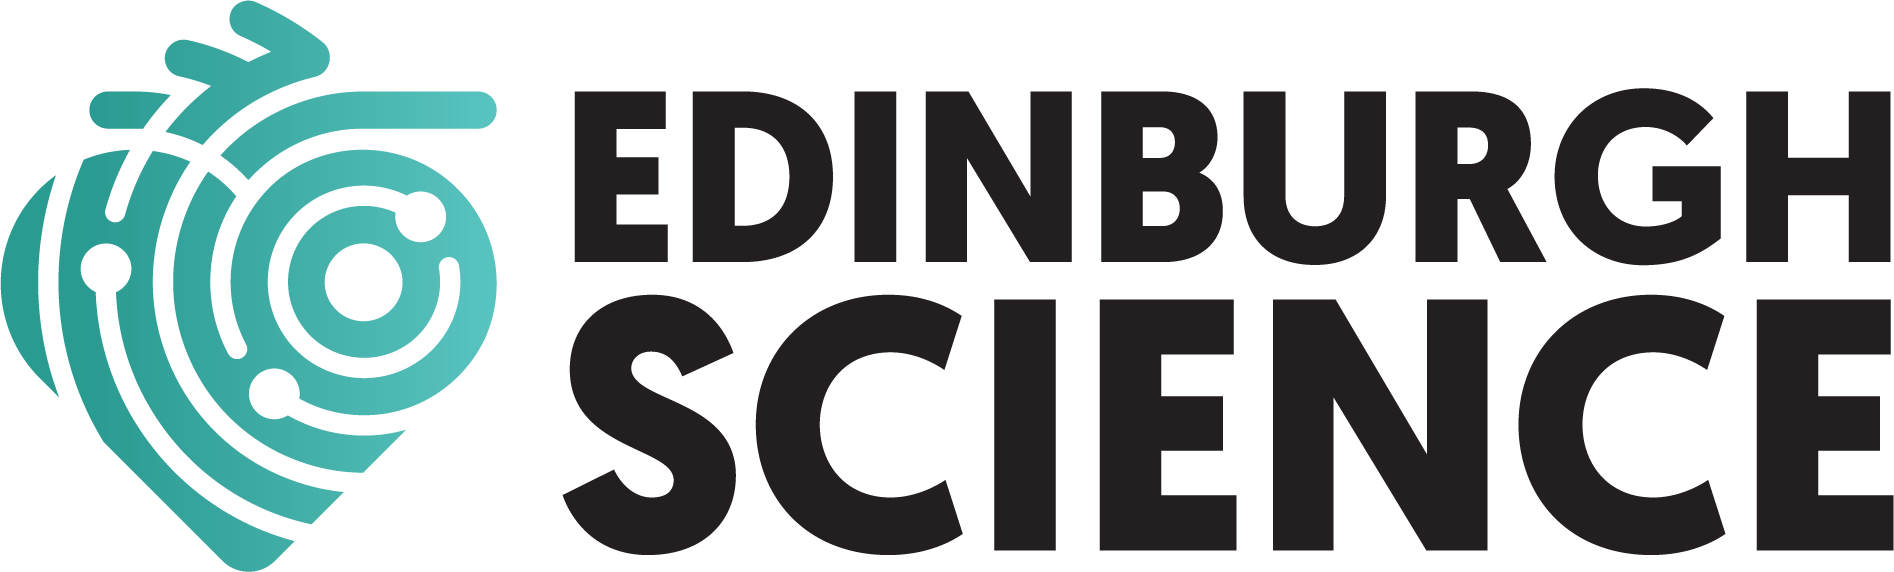 Edinburgh Science